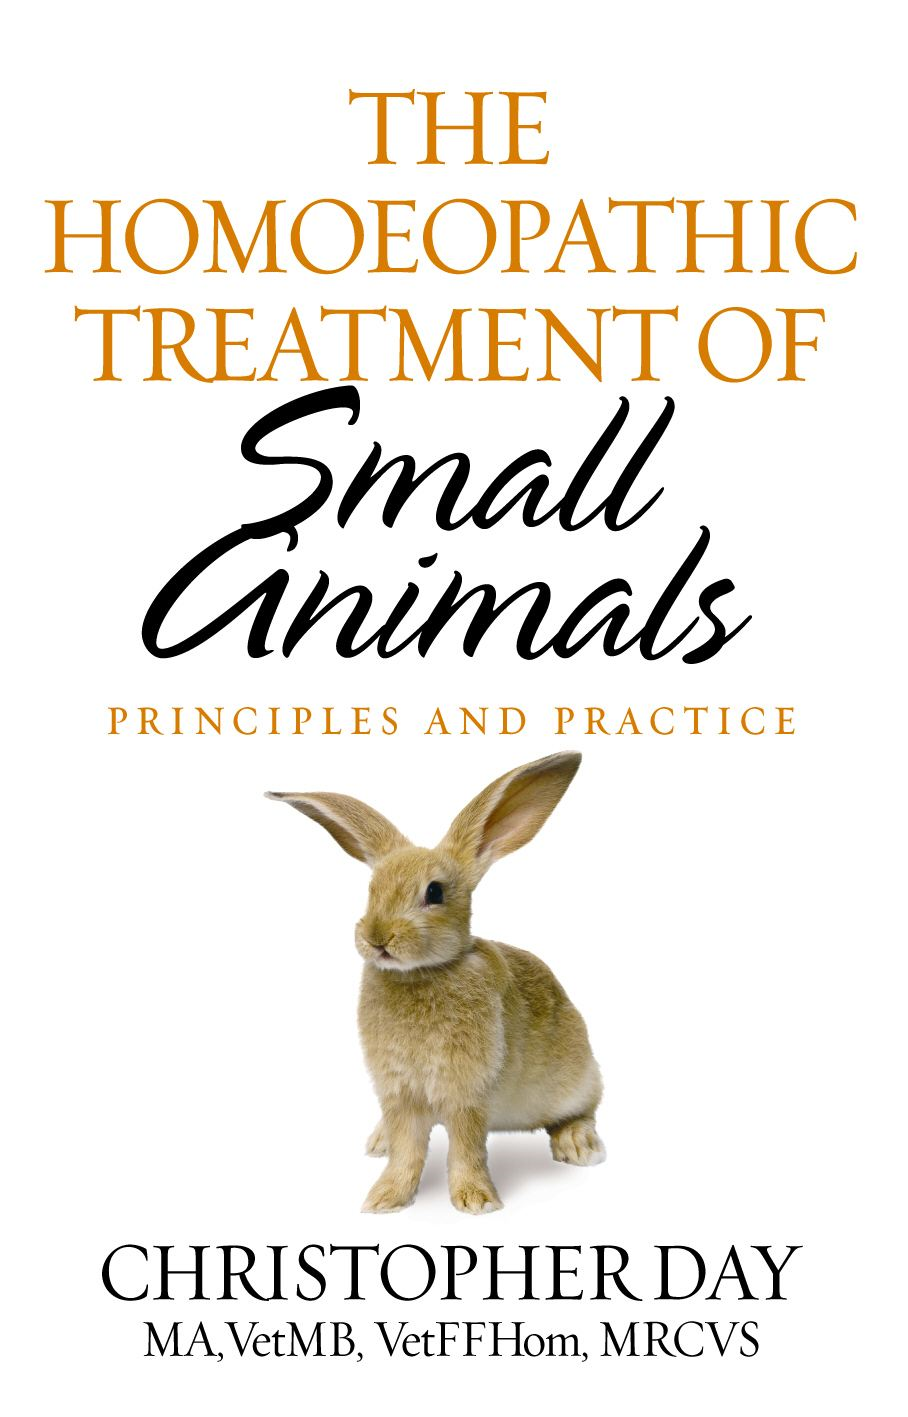 The Homoeopathic Treatment Of Small Animals Principles and Practice